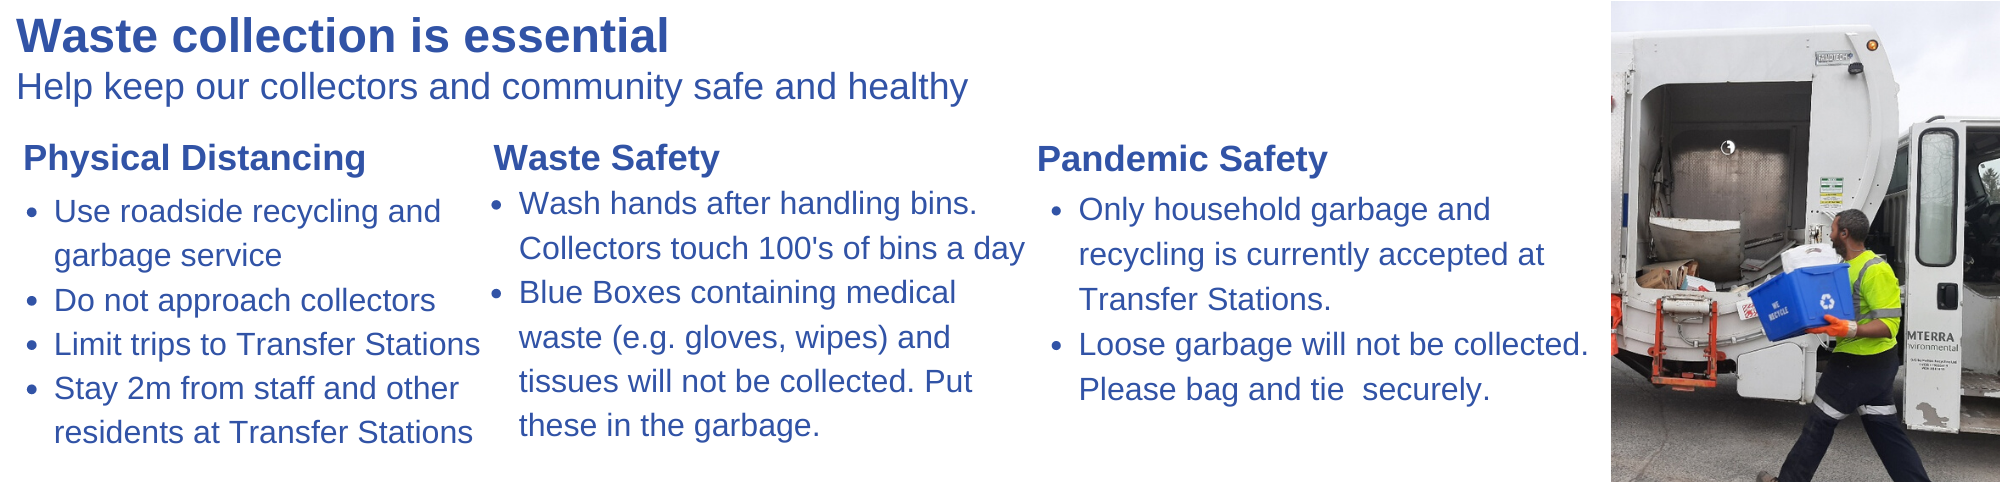 Visit our Covid 19 page to for how to keep waste collection safe